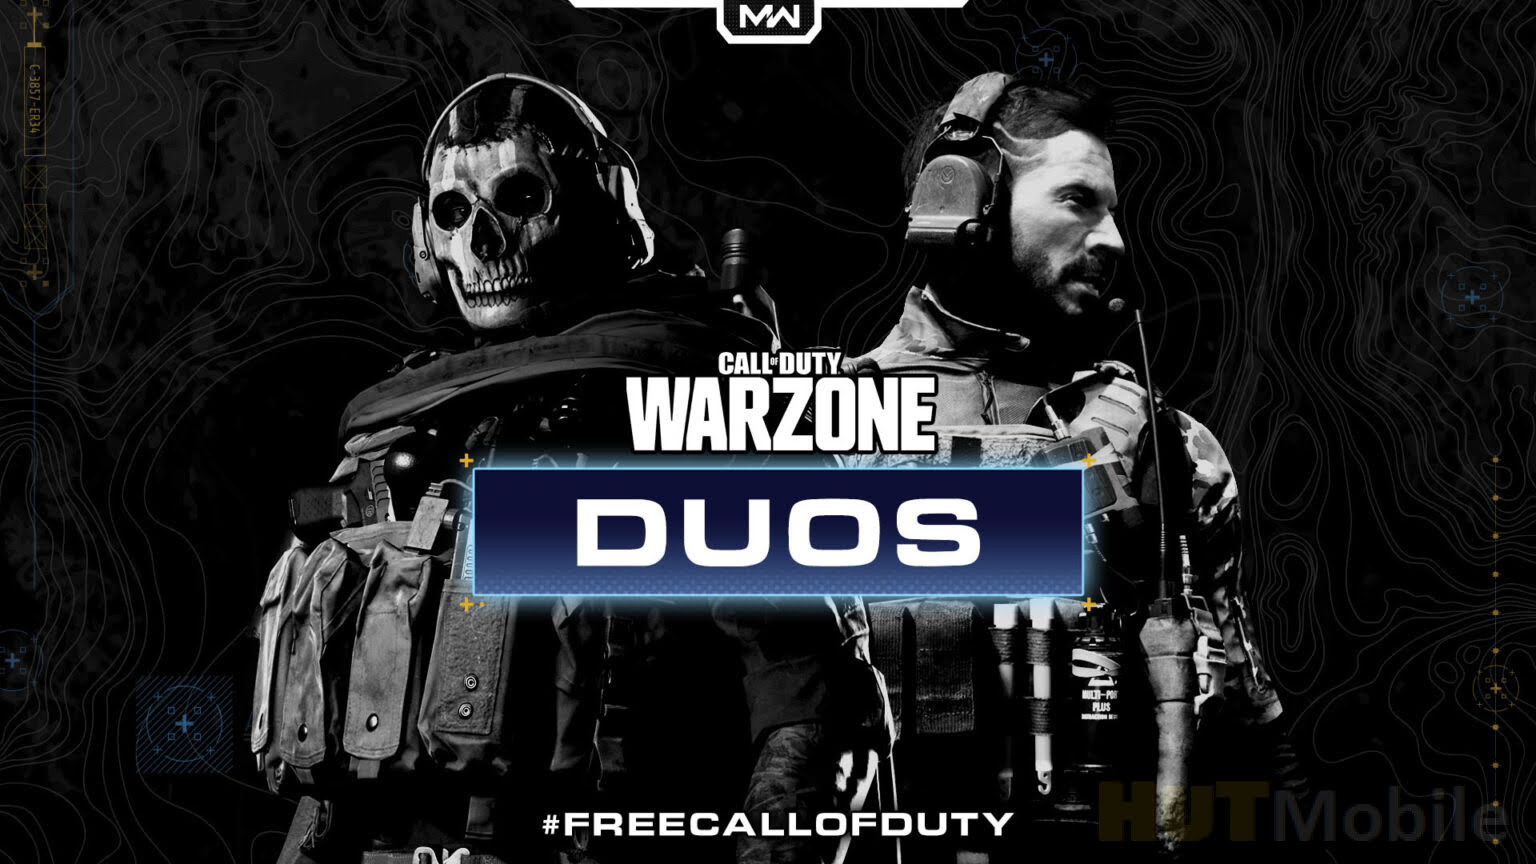 Call of Duty Warzone is on the agenda with Duos mode!